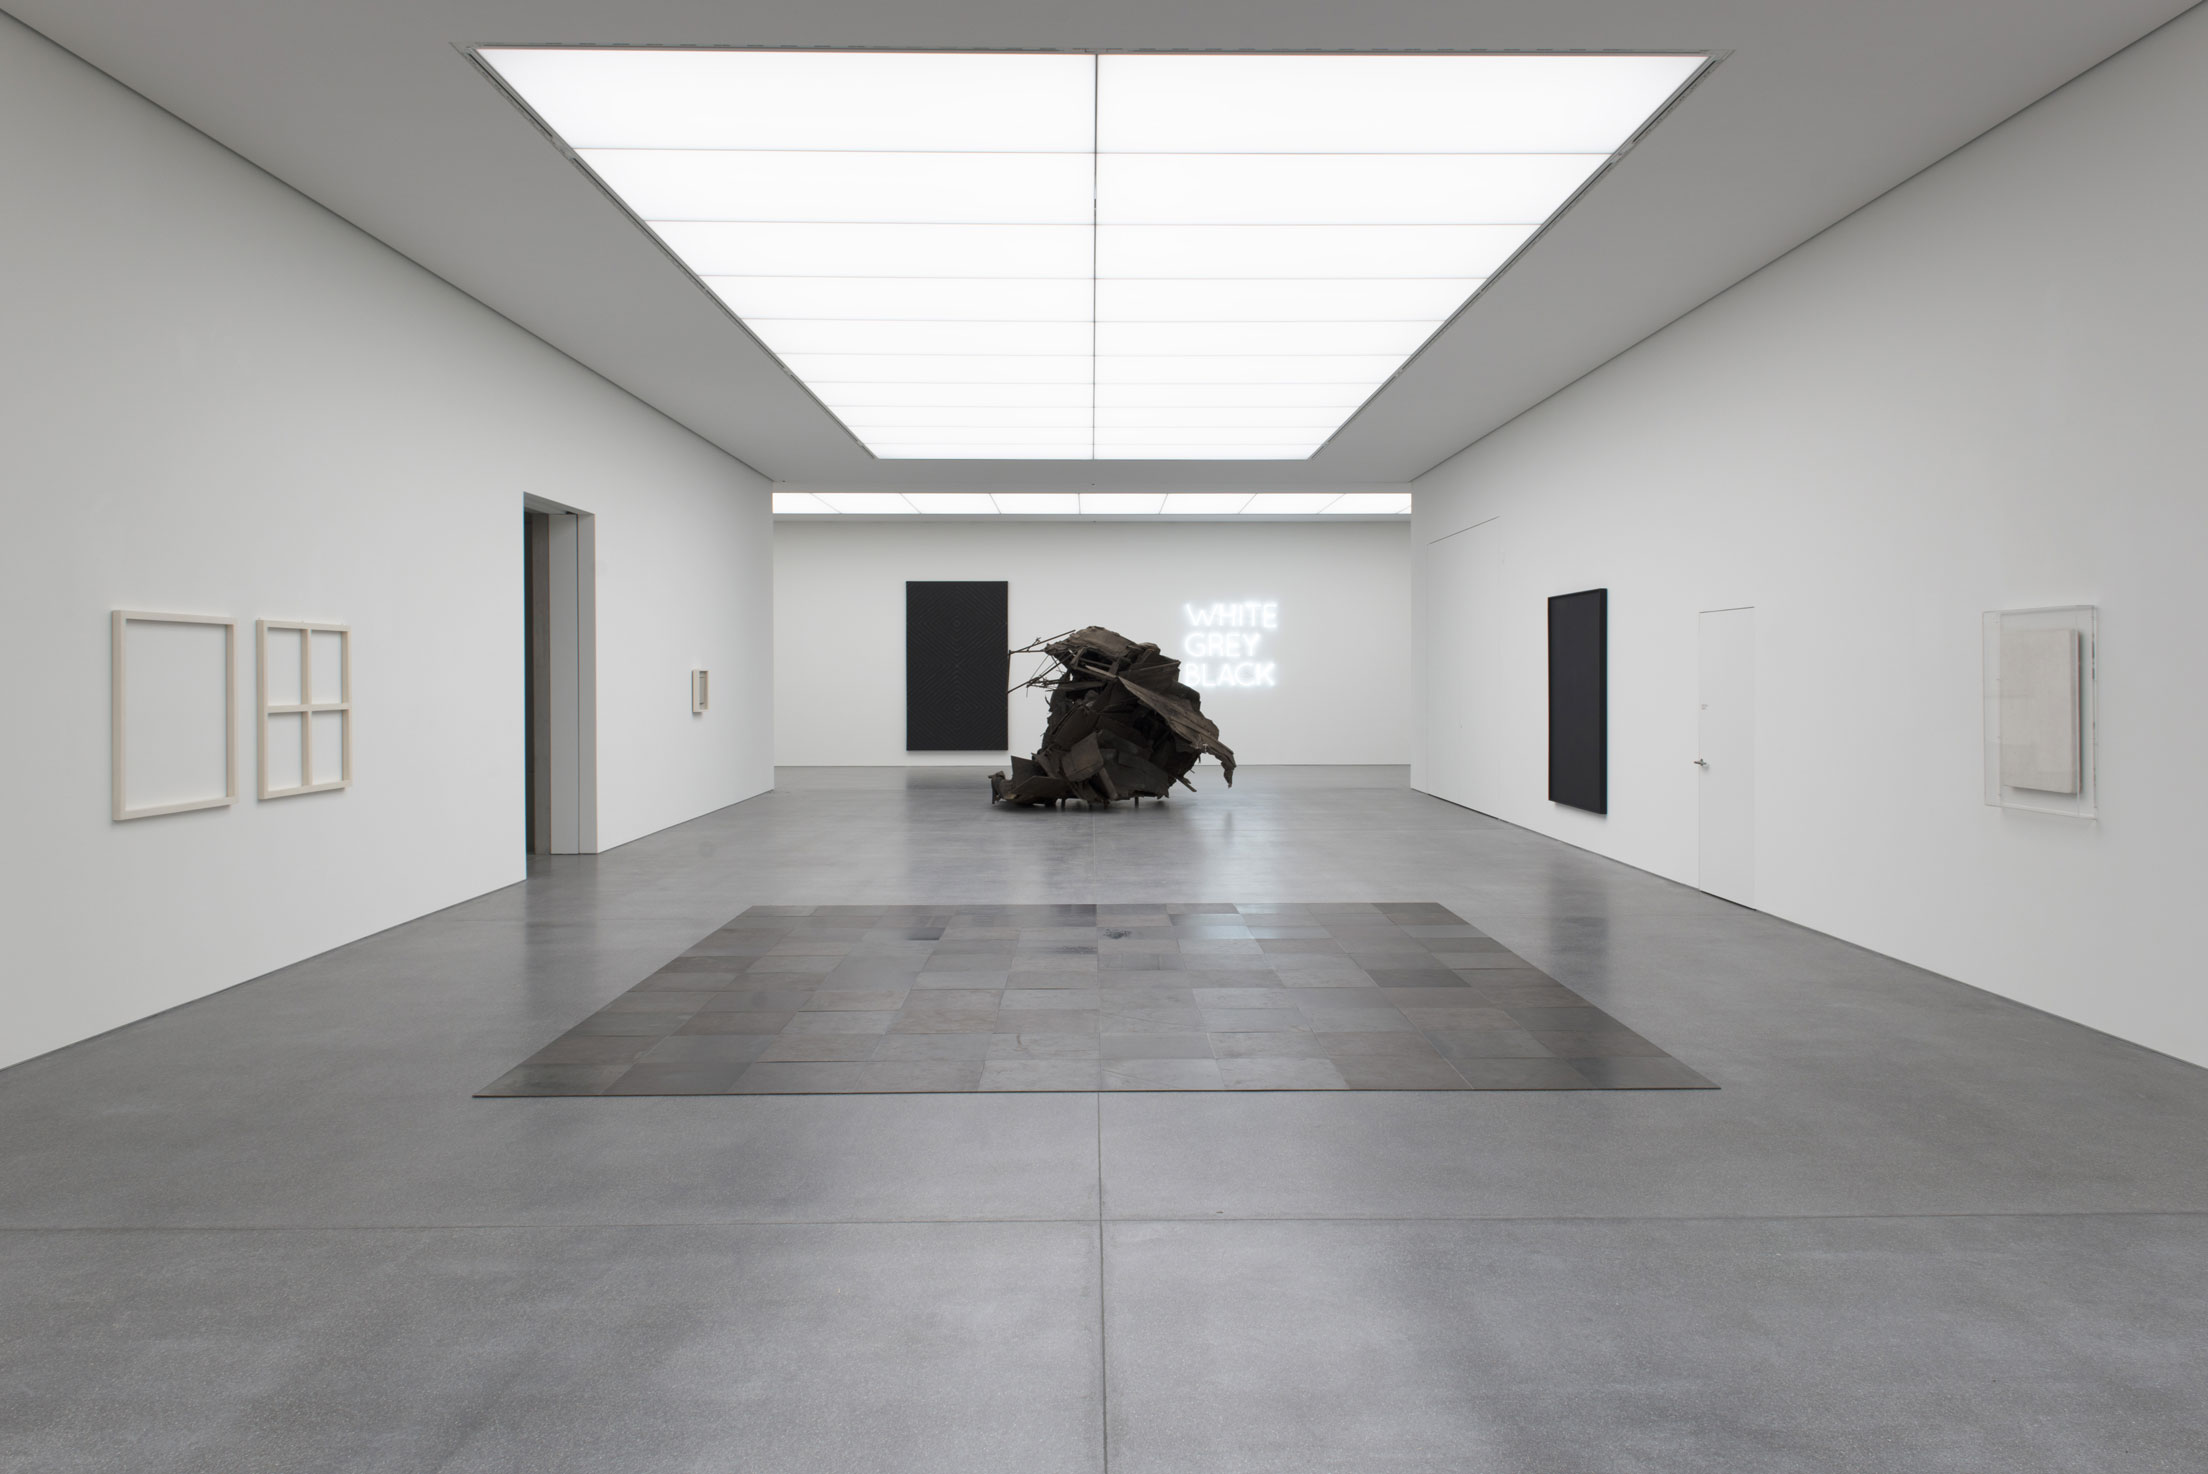 « Always different, always the same », art conceptuel et art minimal au Musée des Beaux-Arts des Grisons de Chur, Suisse